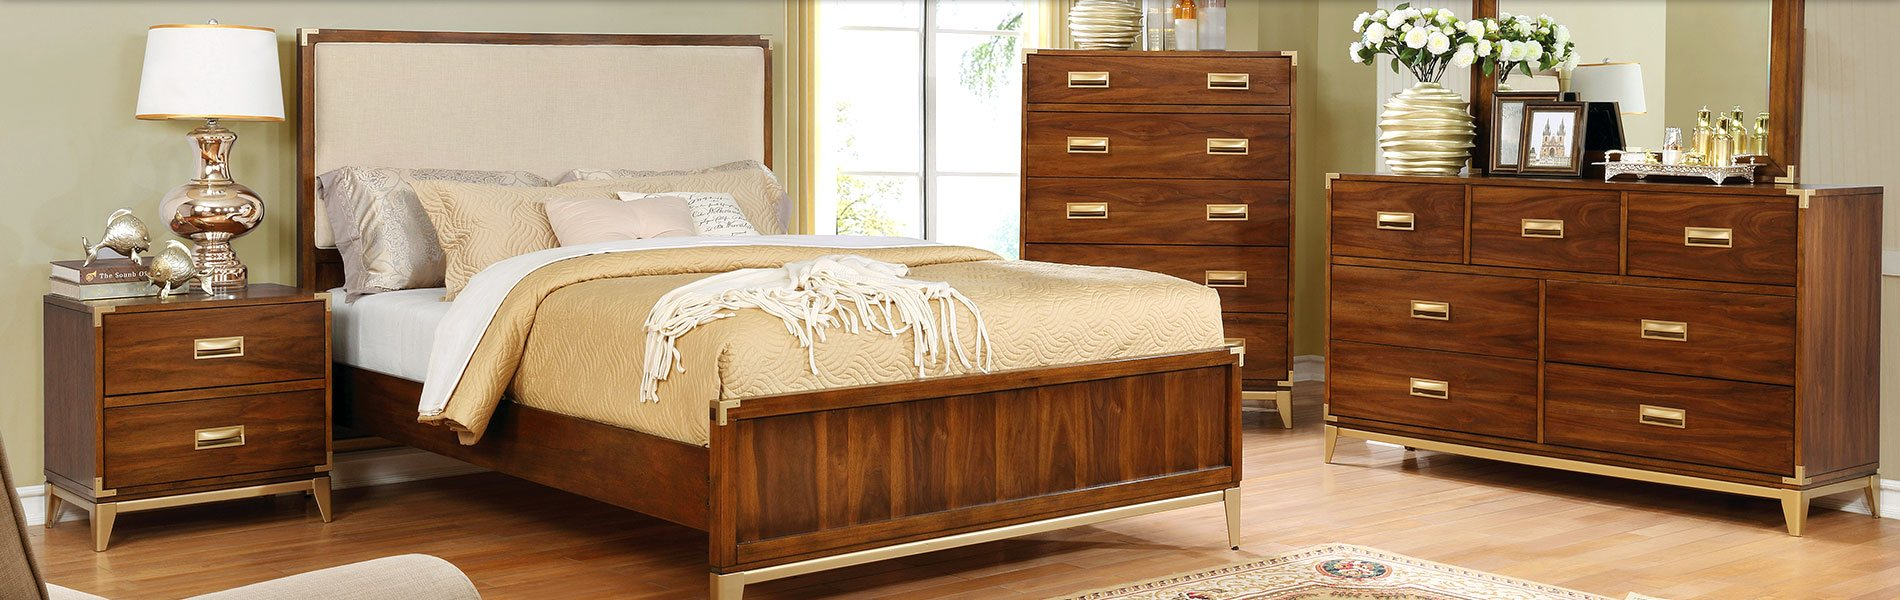 furniture of america | more value for less, always!